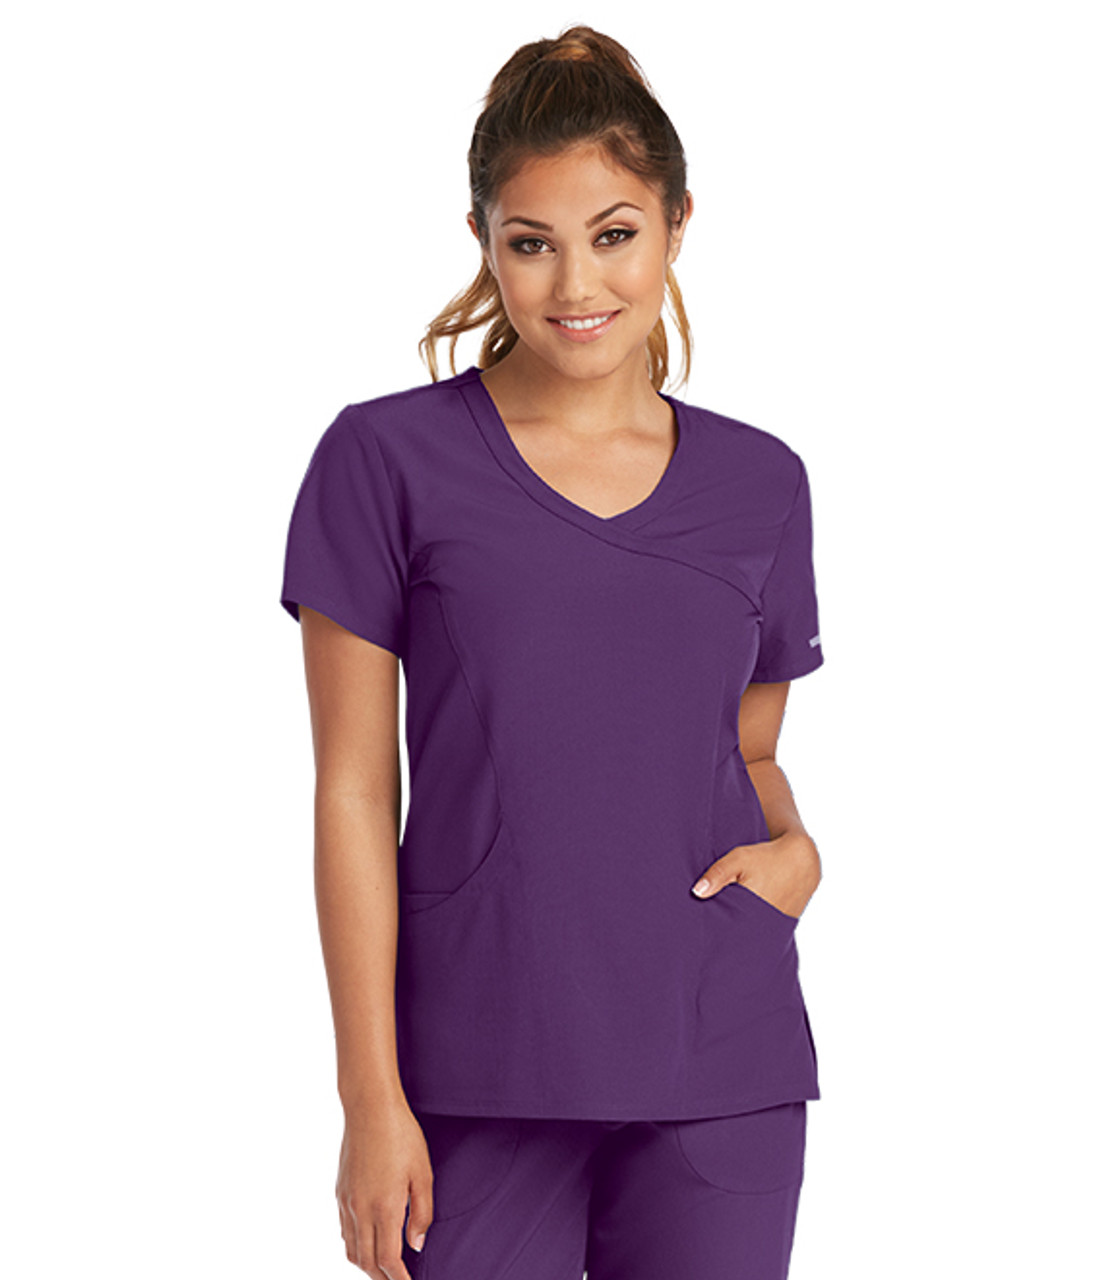 (SK102) Skechers Scrubs - Reliance 3 Pocket Mock Wrap Scrub Top - Eggplant